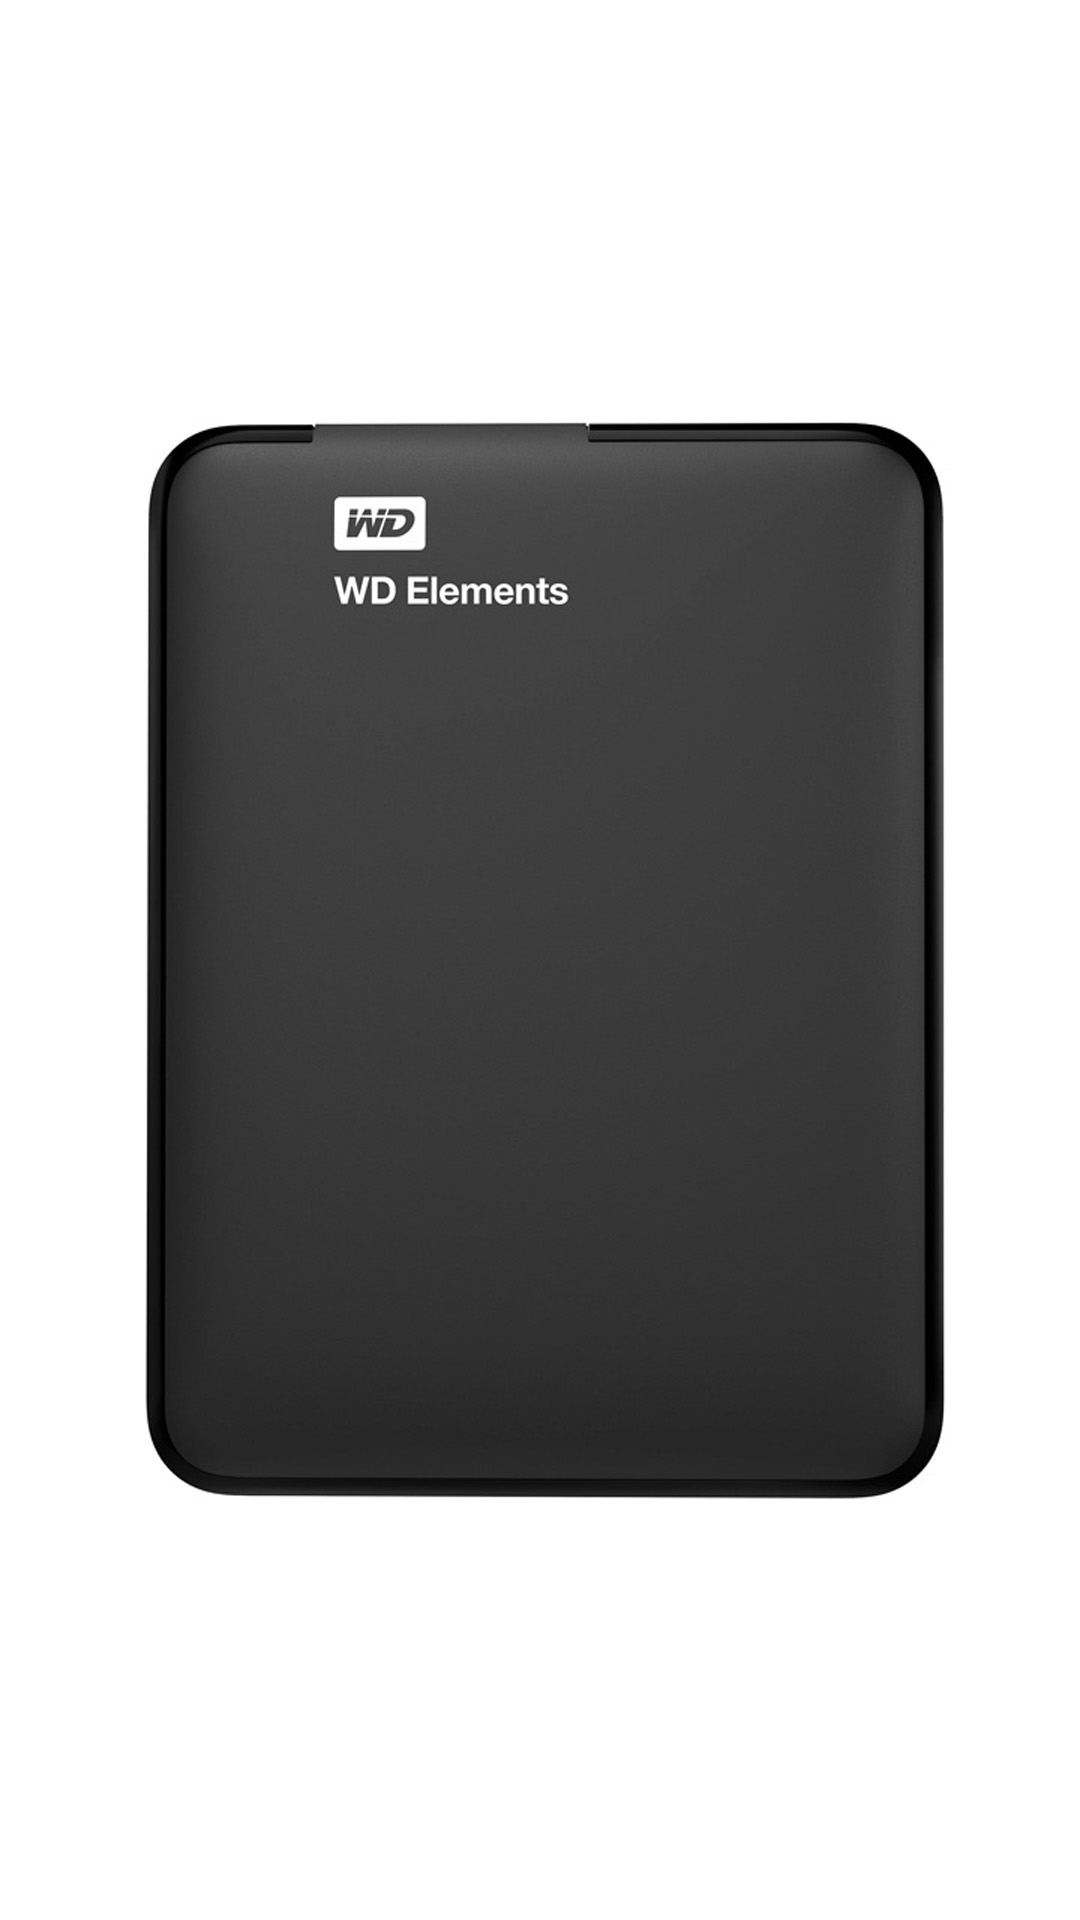 WD Elements (WDBUZG5000ABK) 500 GB Portable External Hard Drive (Black)